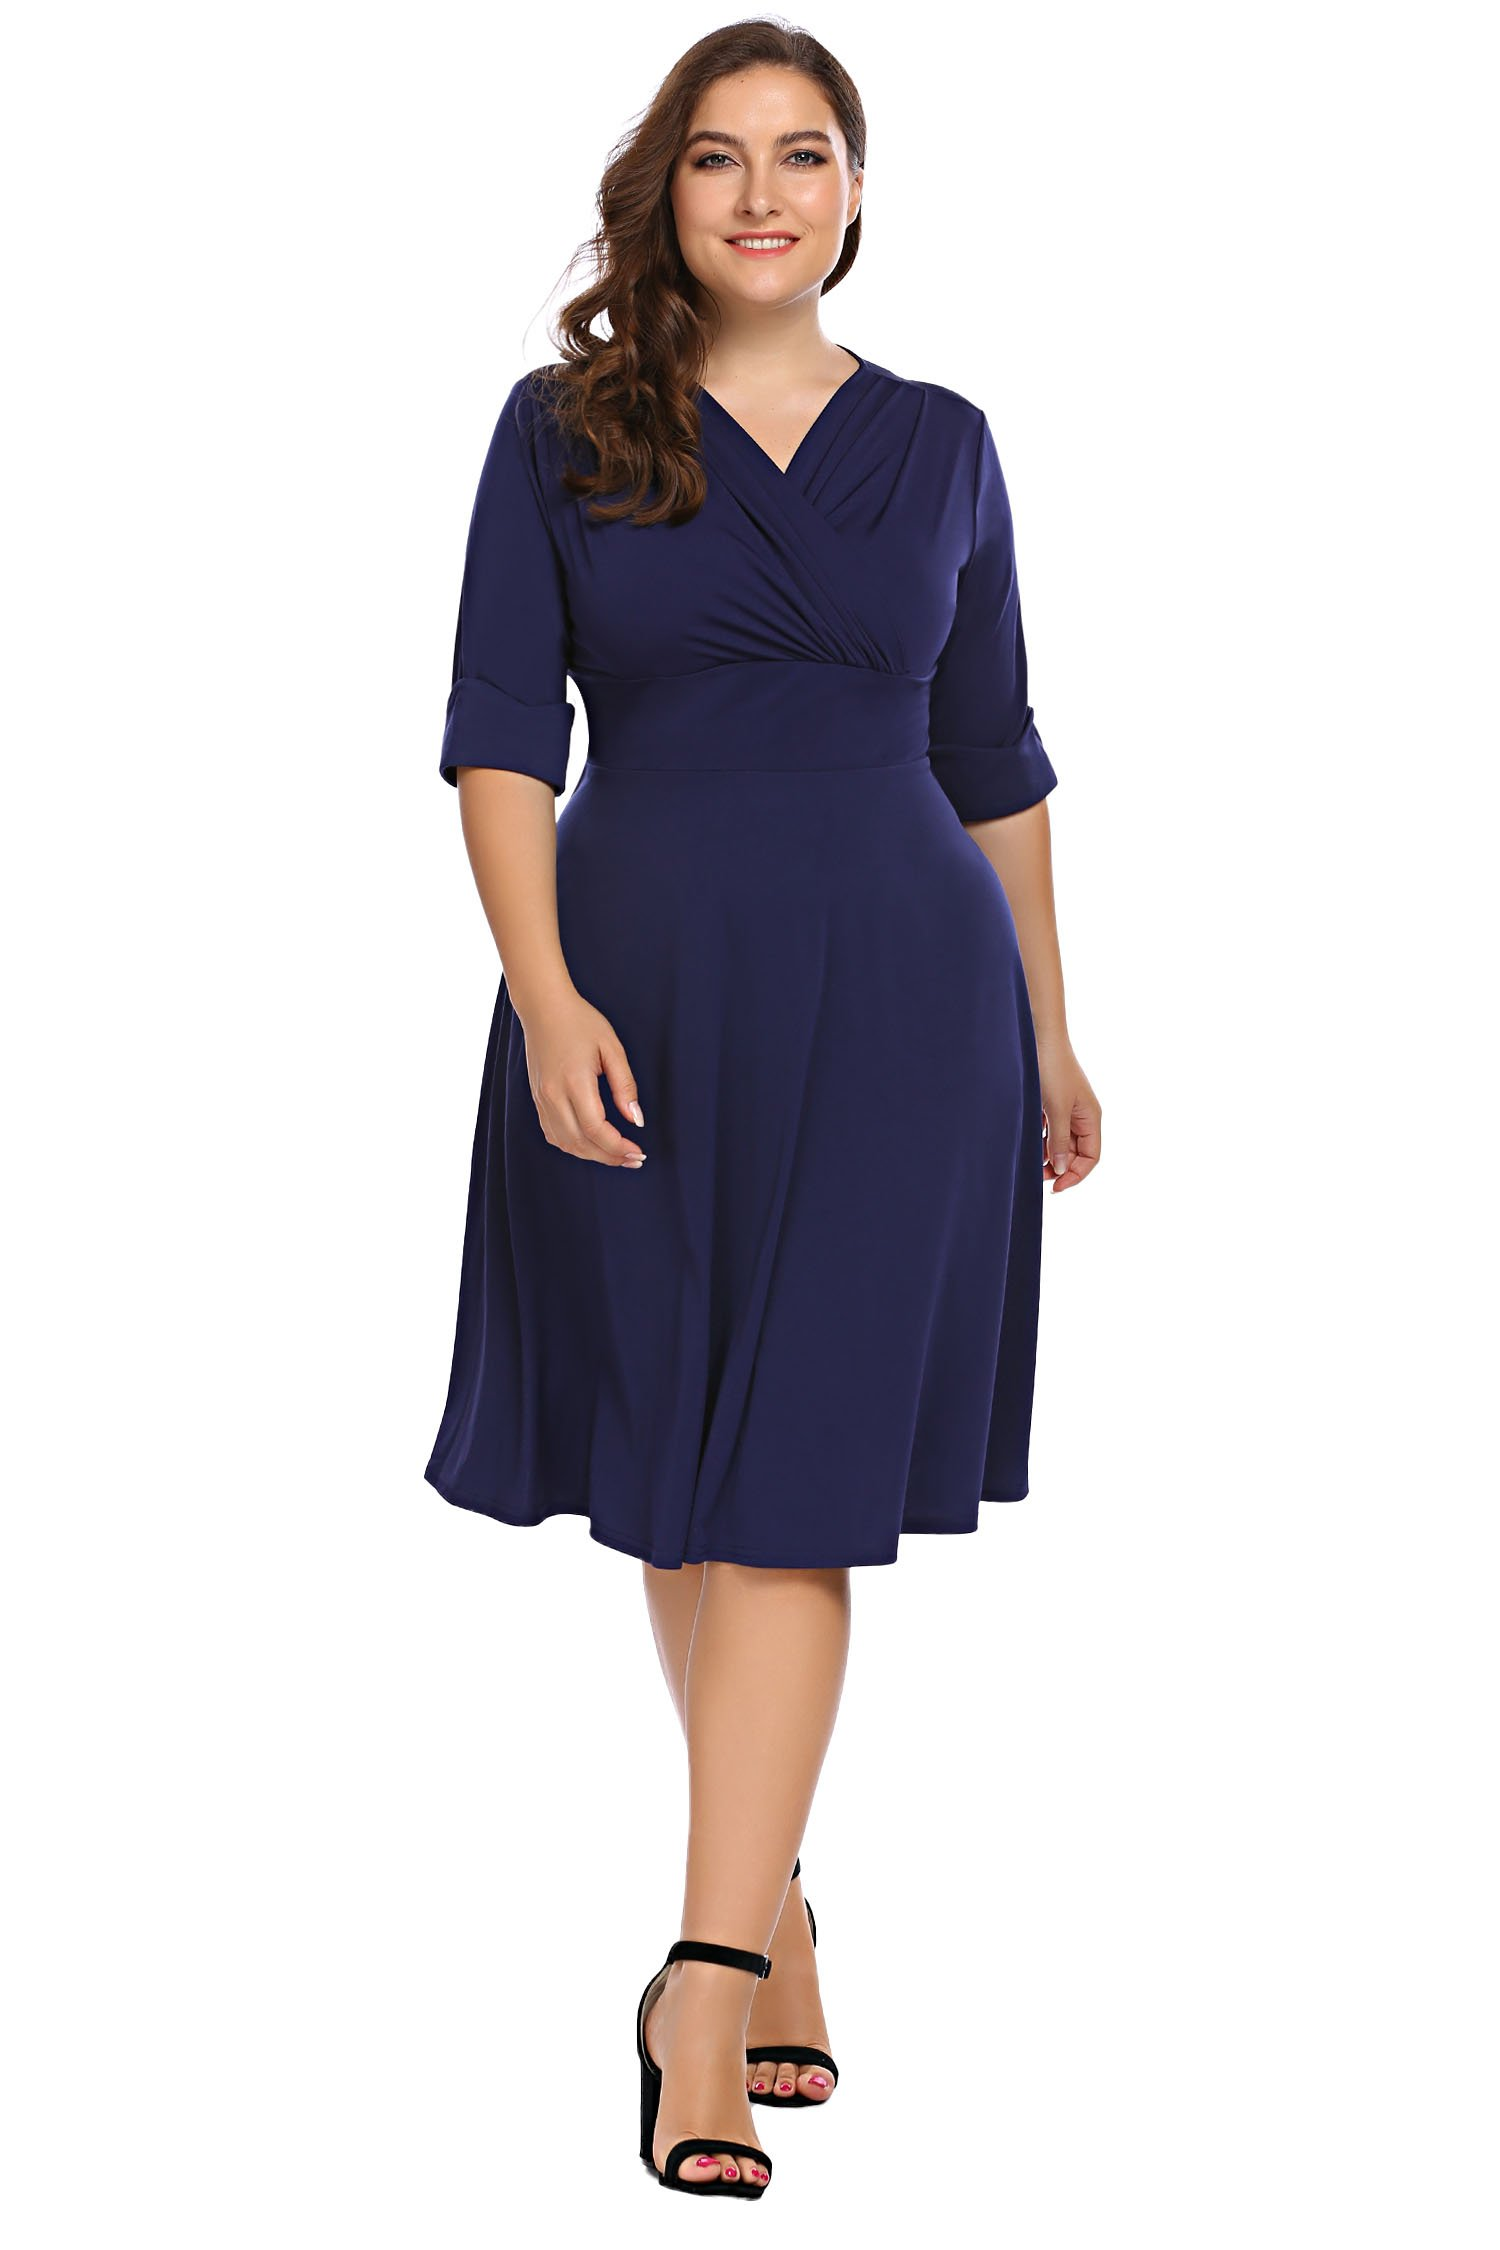 Involand Women's Plus Size Sexy Wrap Dress 3/4 Sleeve Midi Evening Party Dress,Dark Blue,24 Plus